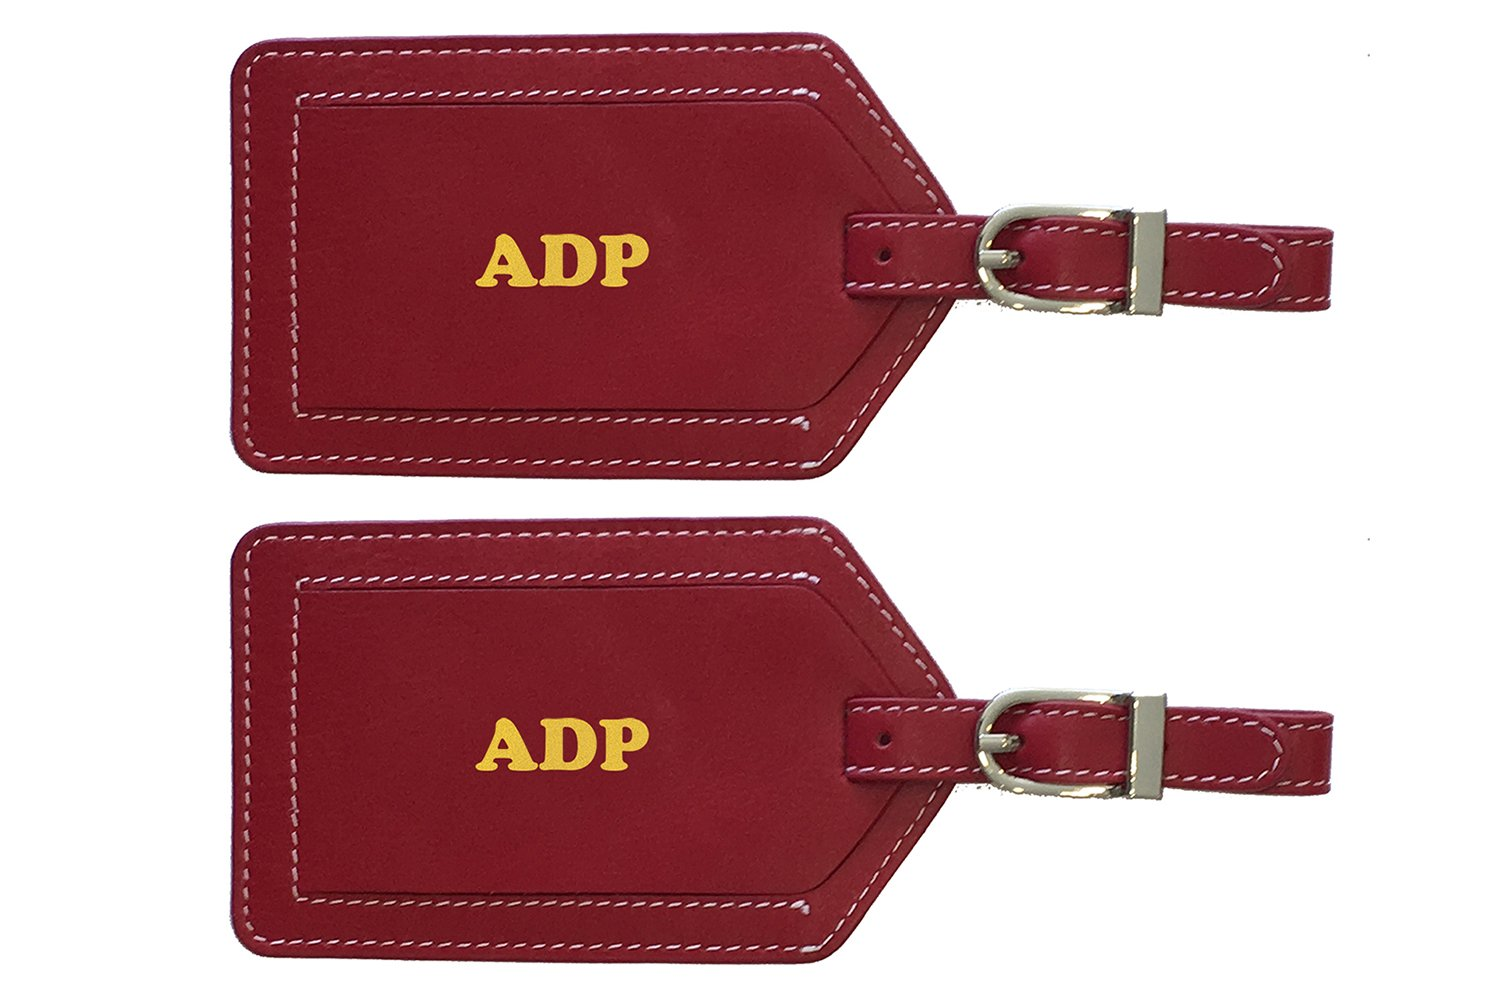 Personalized Monogrammed Red Leather Luggage Tags - 2 Pack by 123 Cheap Checks